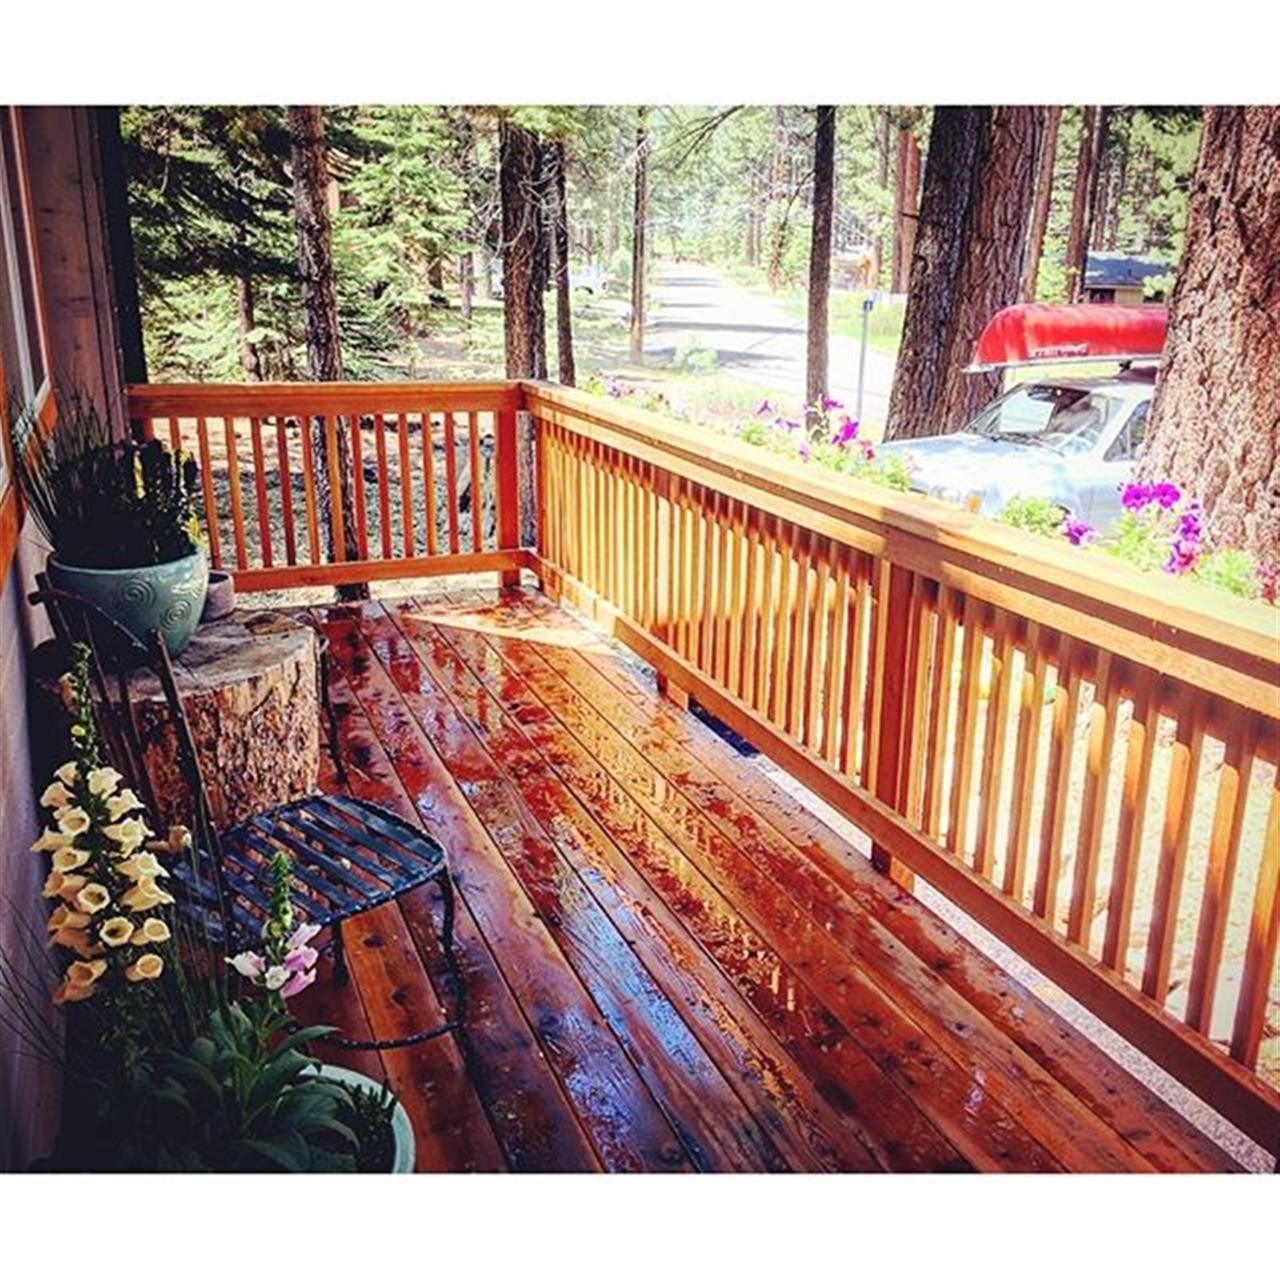 Imagine living in a place where your canoe awaits your arrival after a fresh brewed coffee on the porch in the mornings. Good morning Tahoe! #leadingrelocal #laketahoerealtor #tesla #southlaketahoe